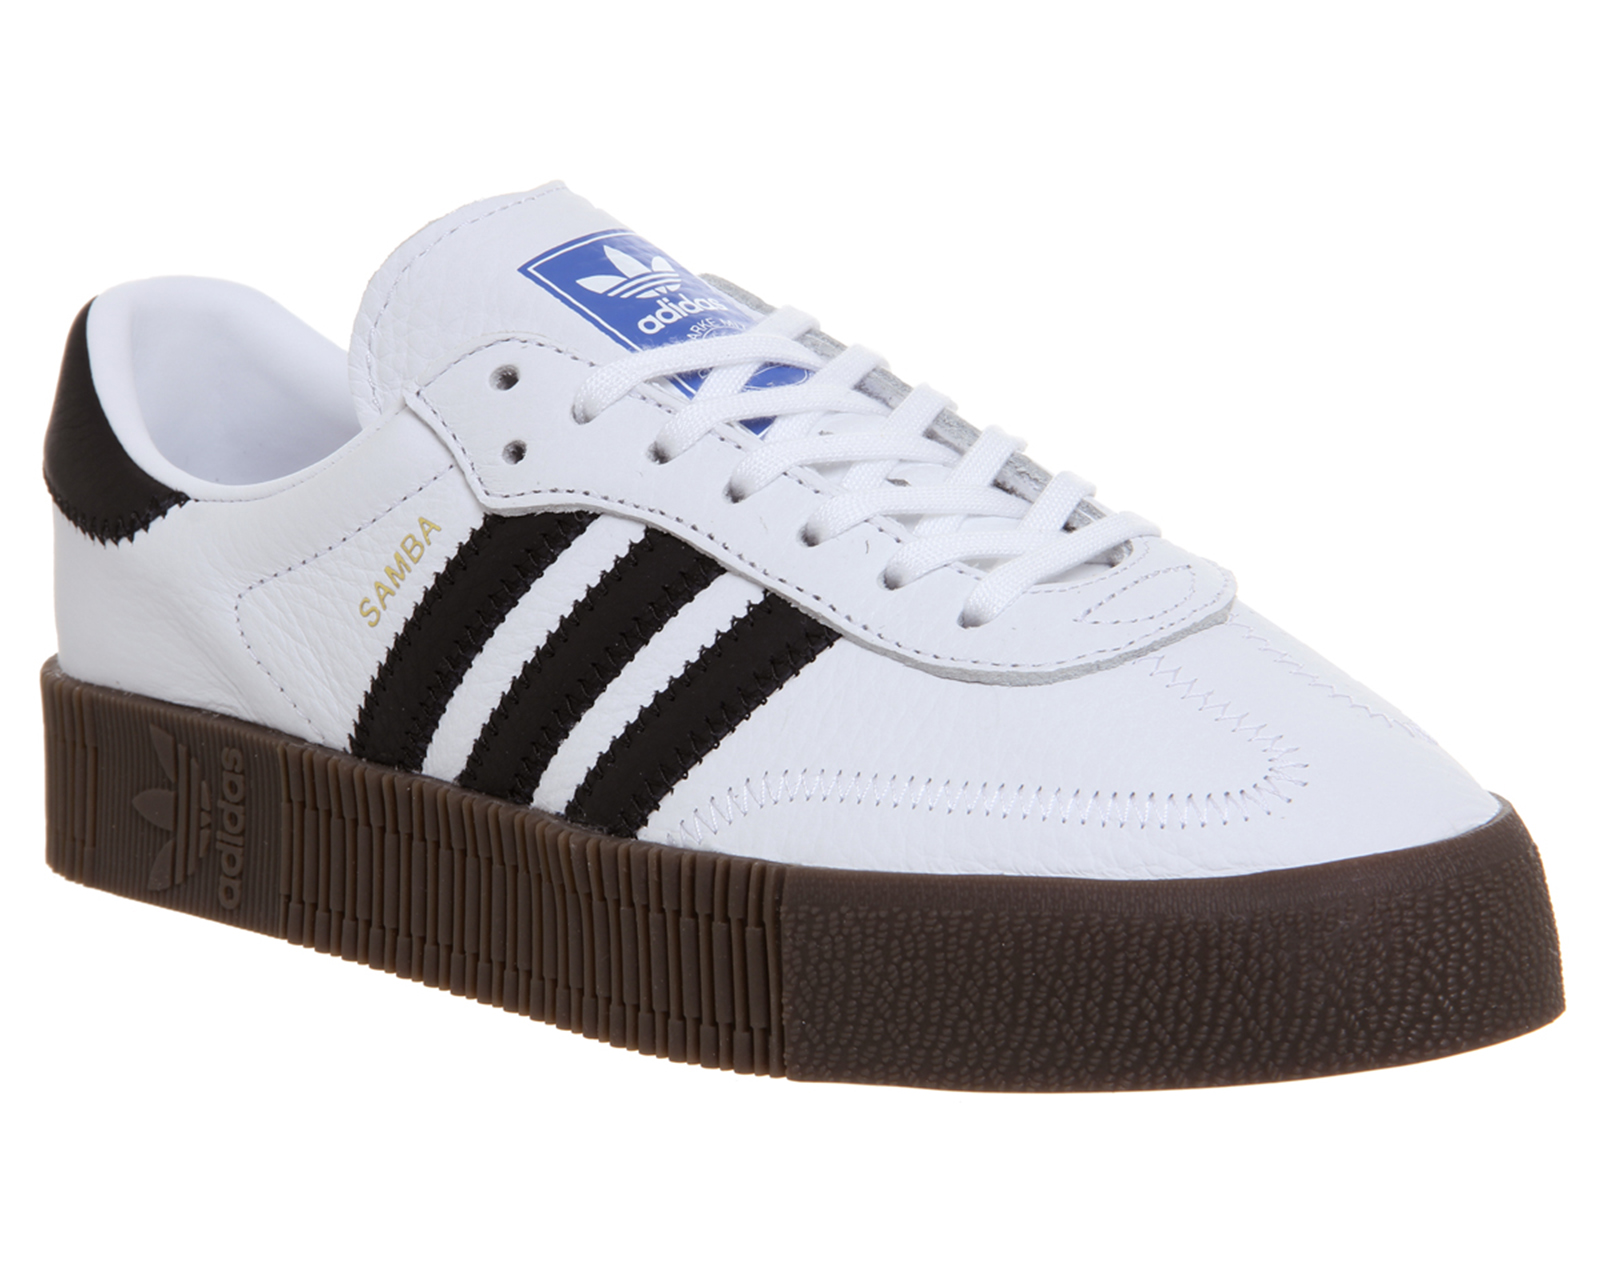 los angeles 4c7bd f98fc Sentinel Womens Adidas Samba Rose Trainers WHITE CORE BLACK GUM Trainers  Shoes